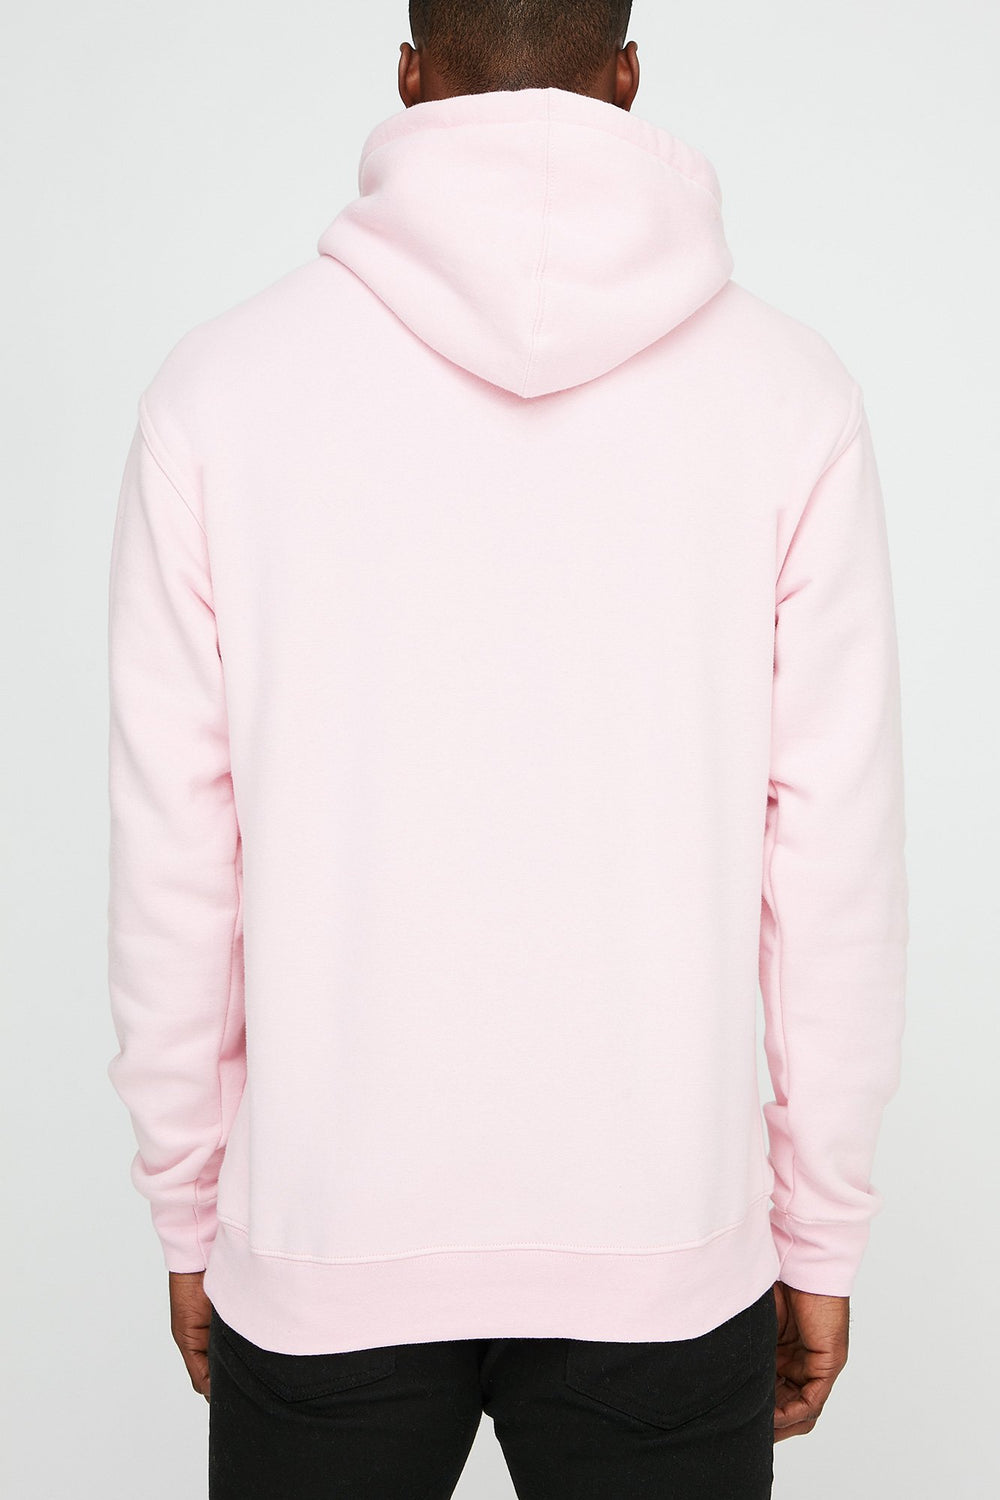 Grizzly Mens OG Bear Embroidery Hoodie Pink